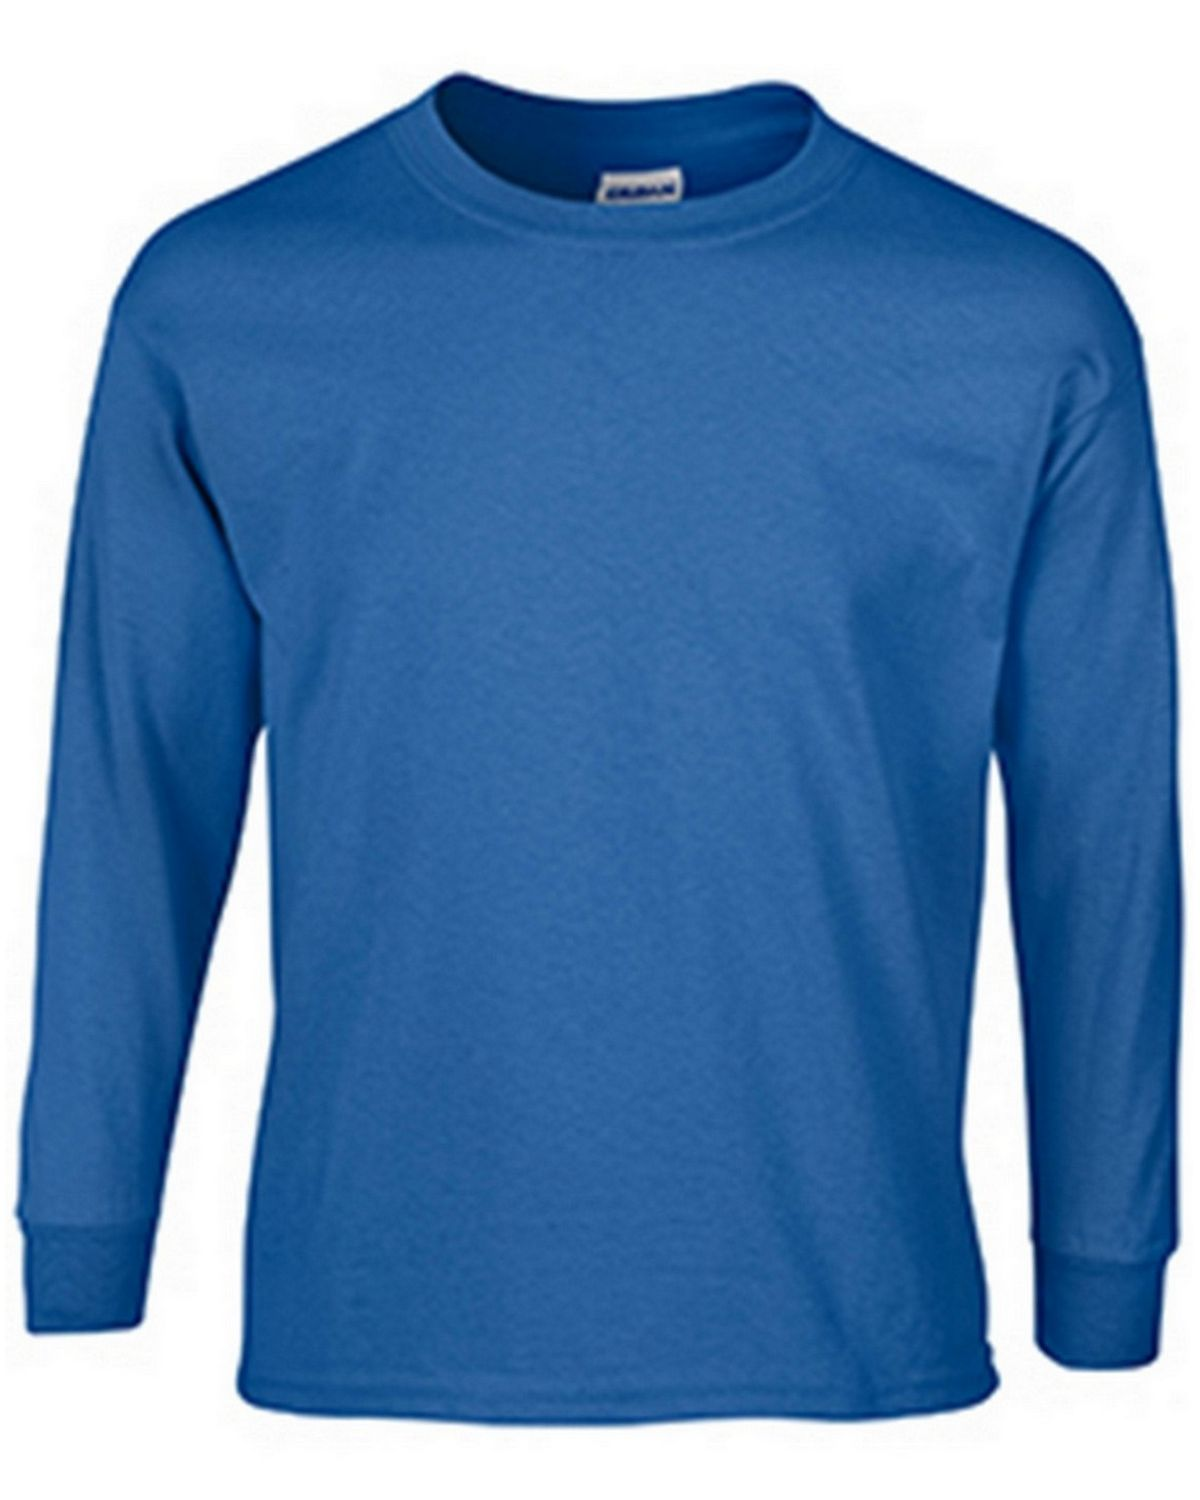 Gildan G2400B Youth Long Sleeve Tee - Royal - M G2400B